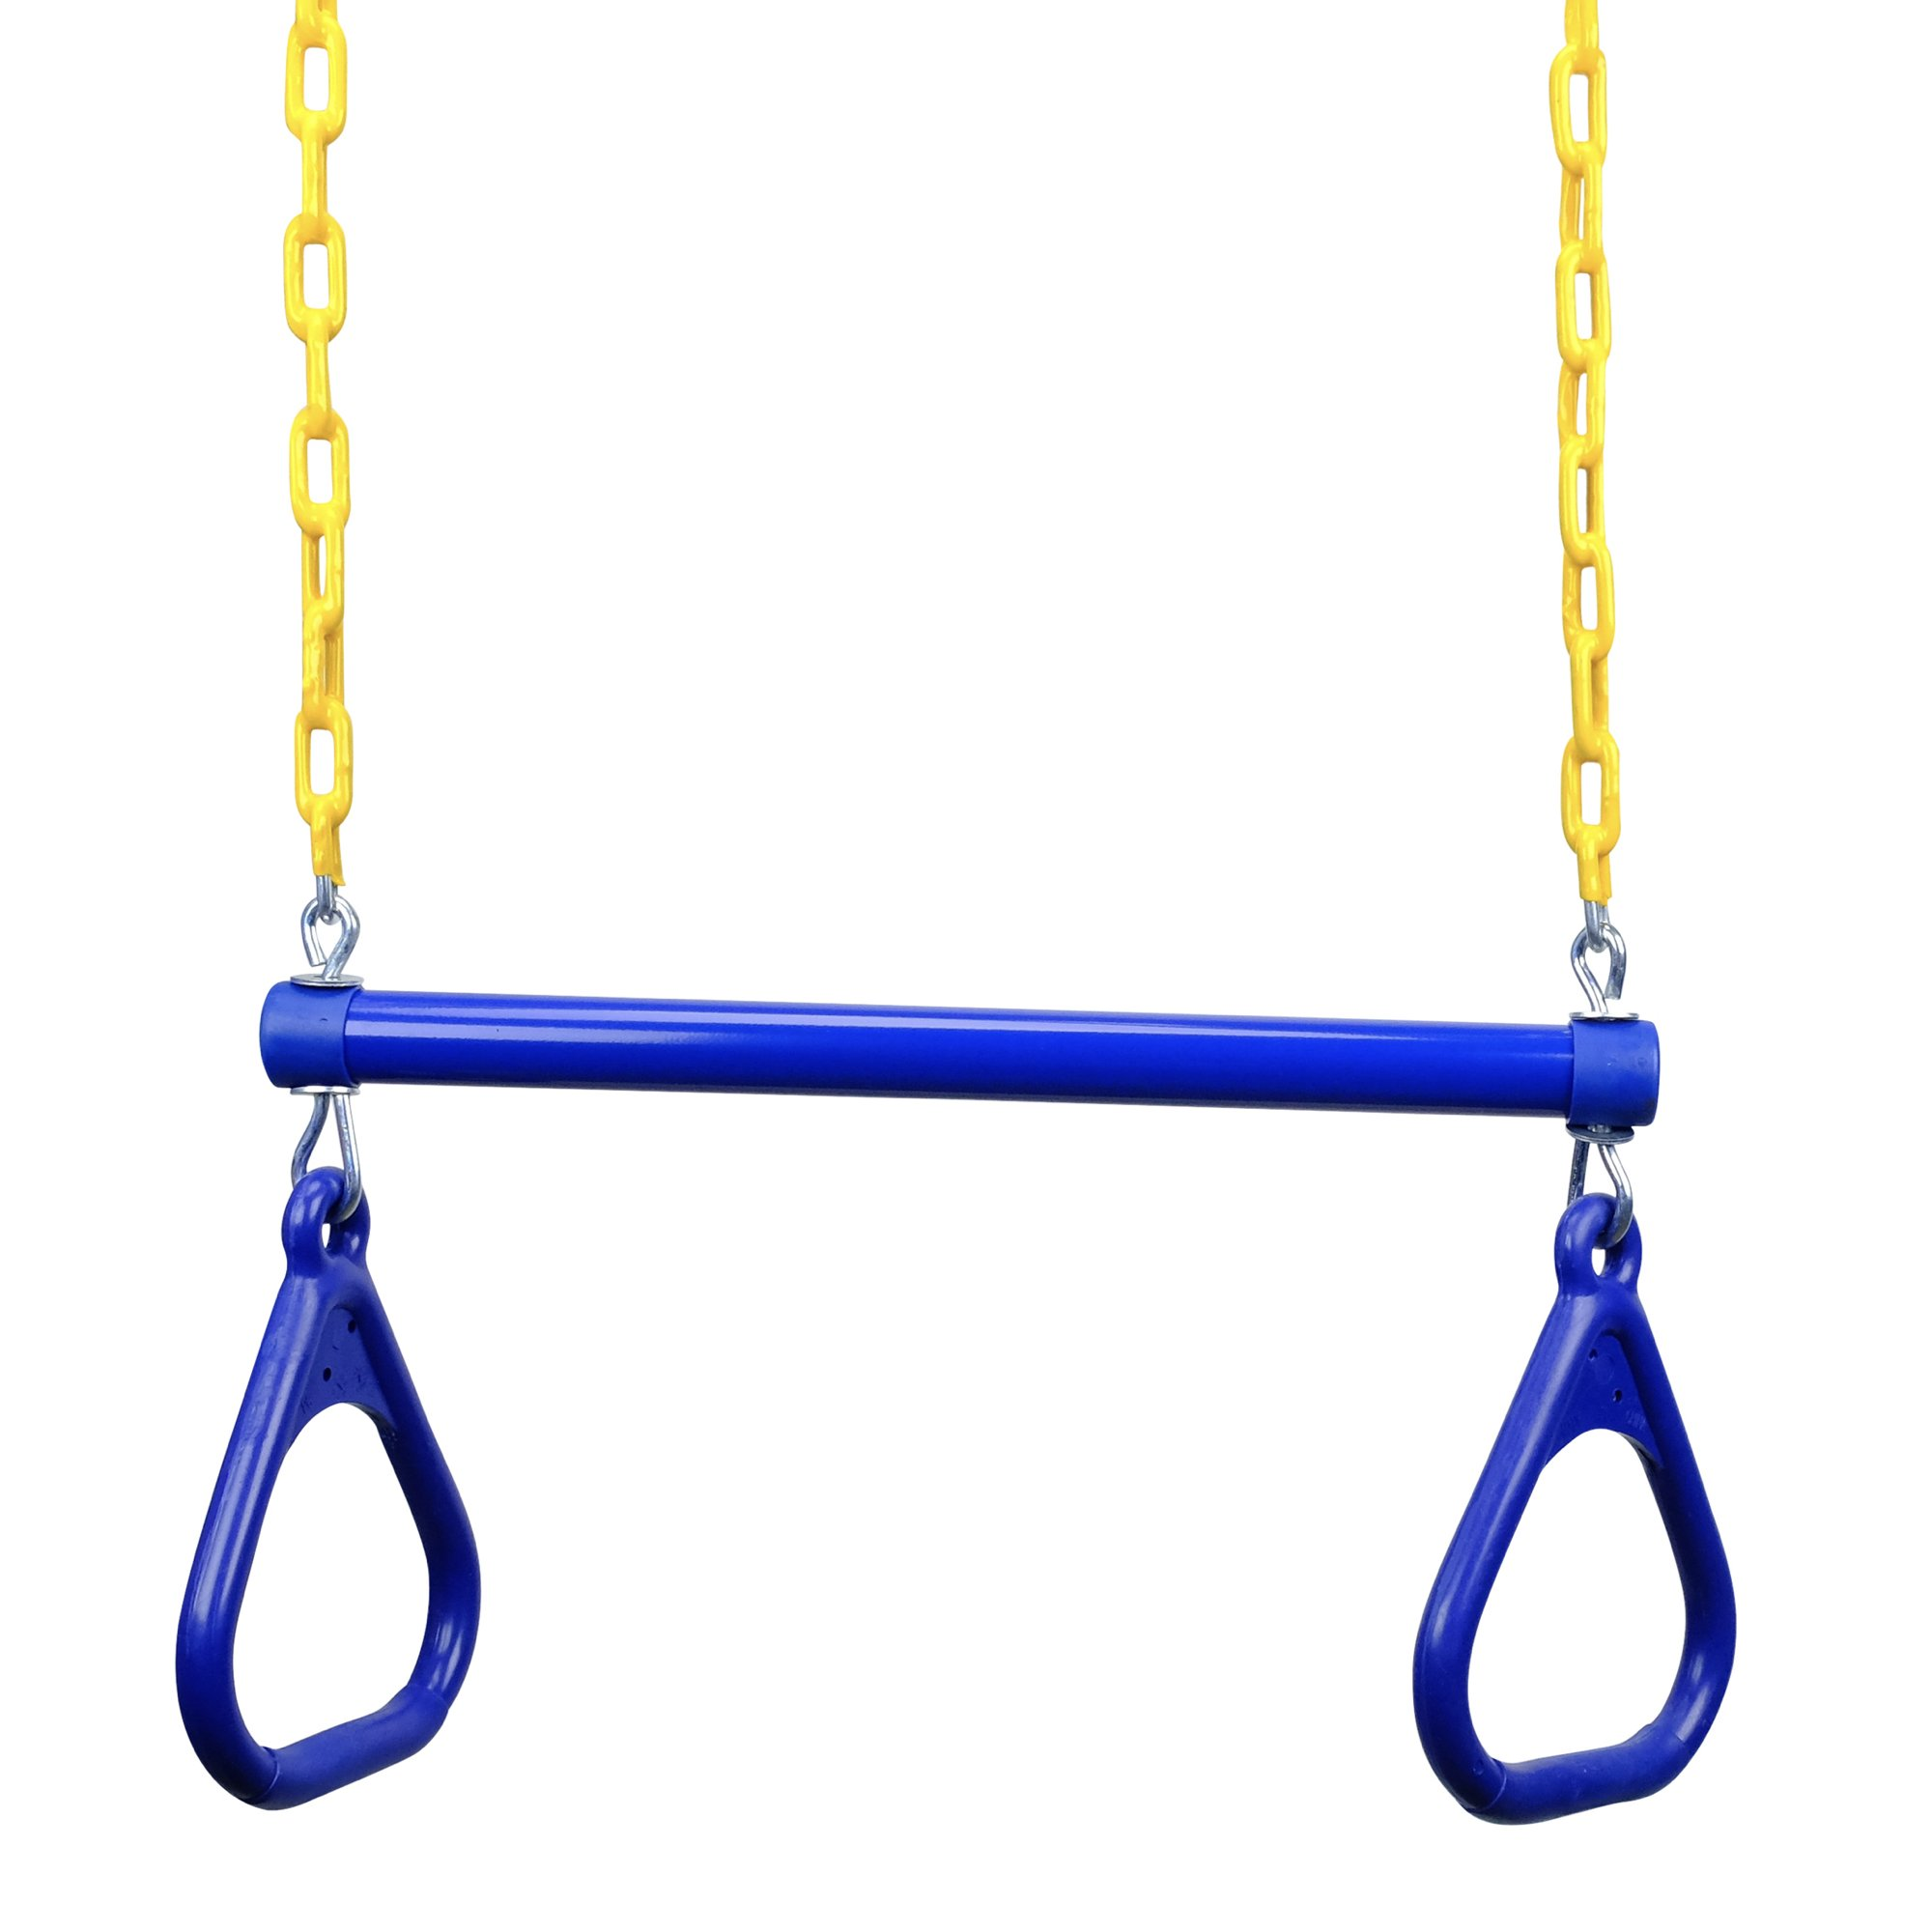 JGS 18'' Heavy Duty Trapeze Swing Bar Combo with Rings and Extra Long 43'' Coated Chain - Great for Outdoor Play, Backyard Swing Set, Jungle Gym (Blue)